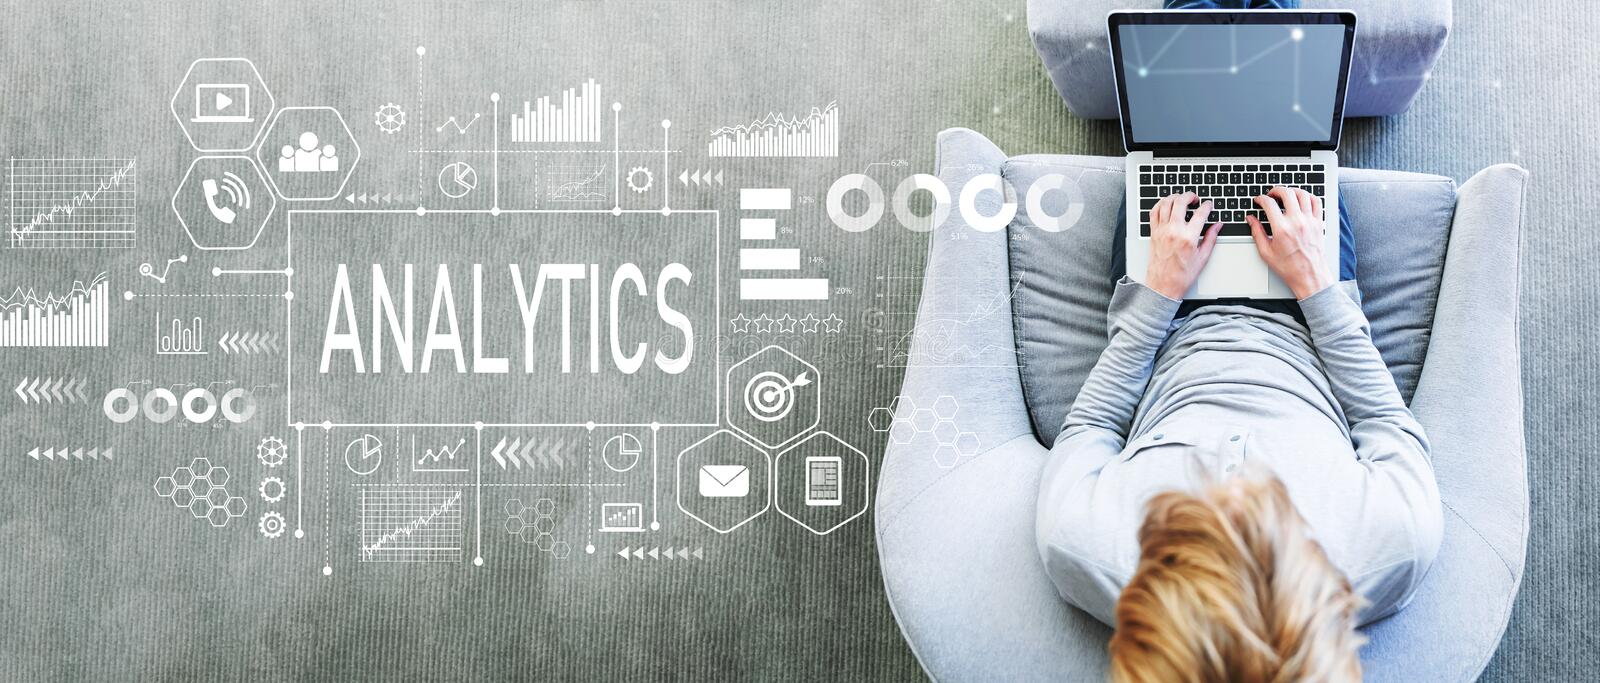 Analytics with man using a laptop stock photo